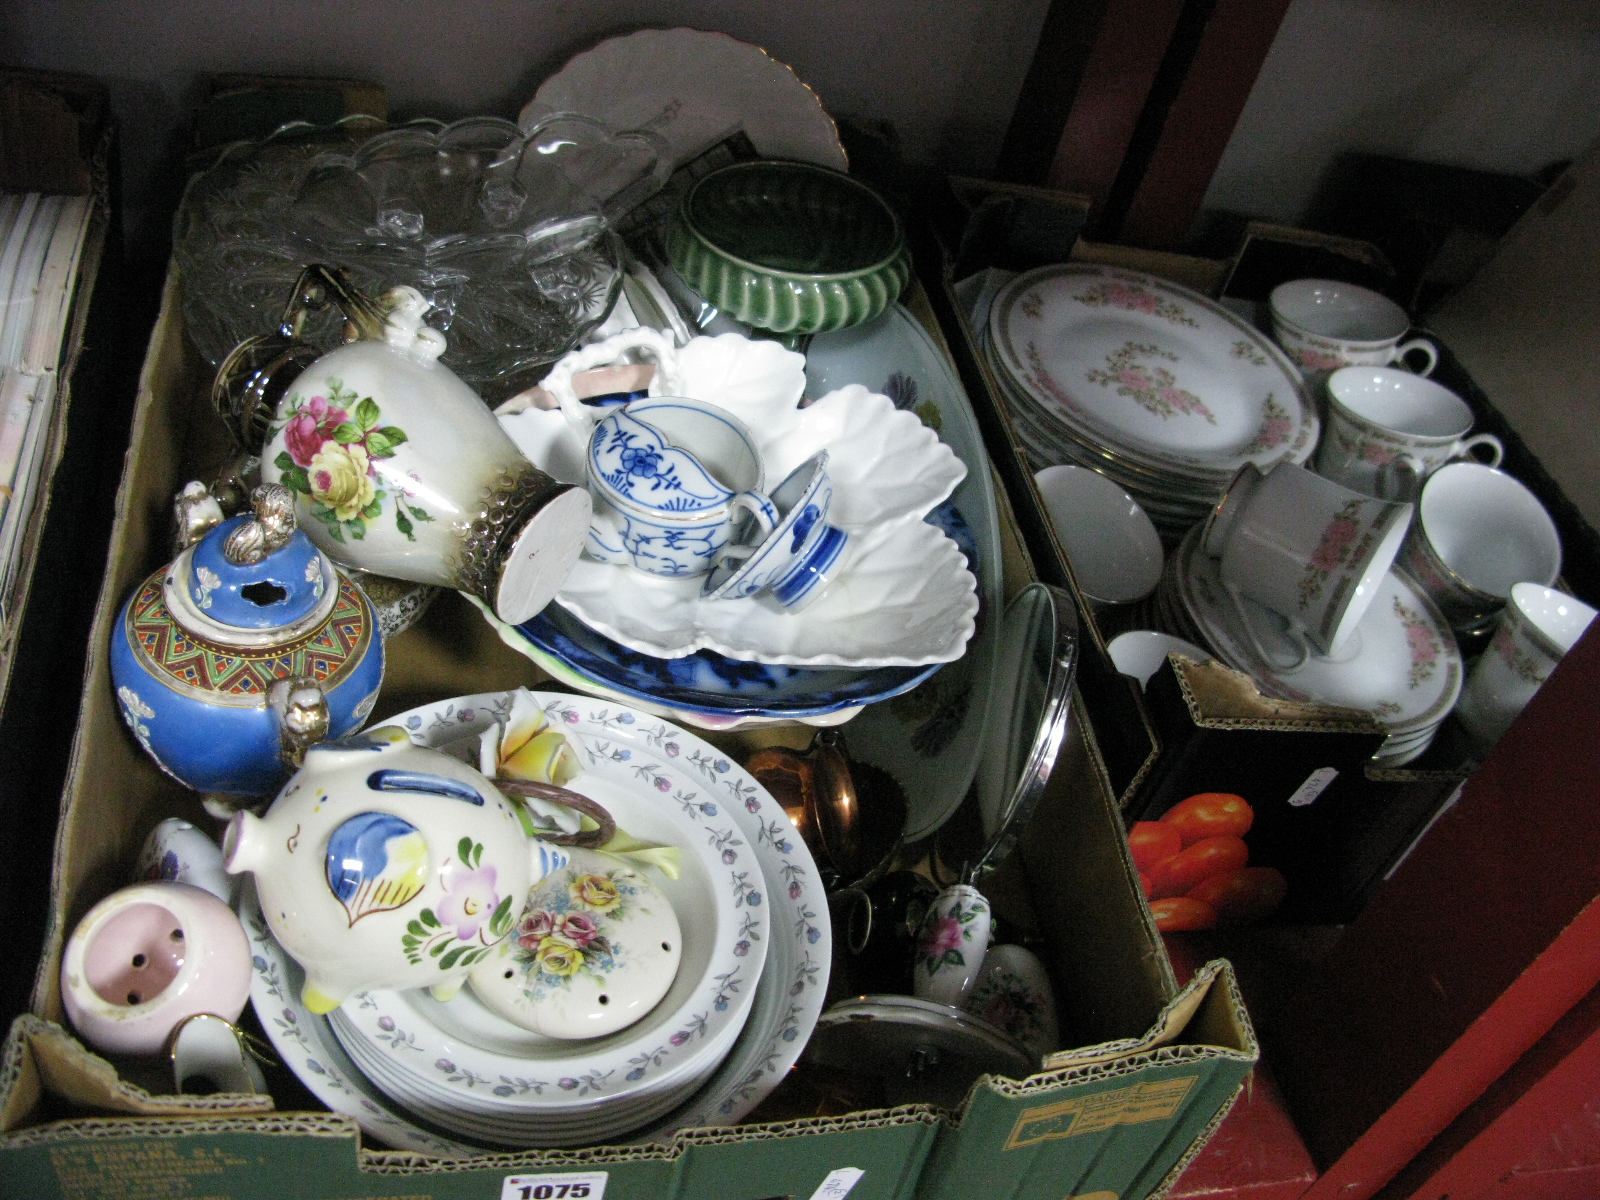 Lot 1075 - Tienshan Dinner Service, piggy bank, other ceramics, glassware, etc:- Two Boxes